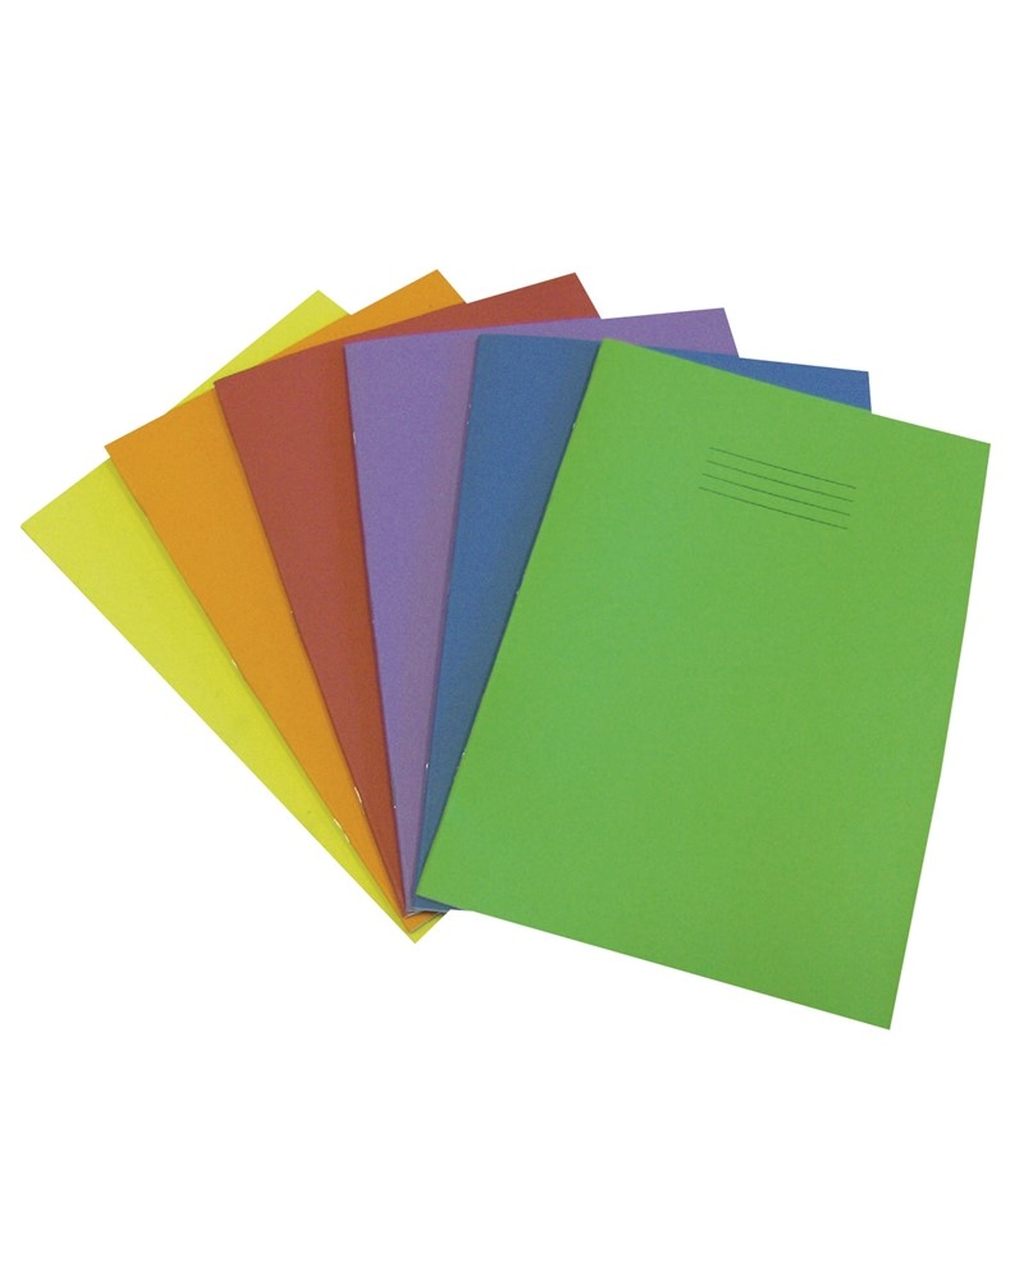 Exercise Book A4 (297 x 210mm) Light Blue Cover 15mm Ruled 64 Pages